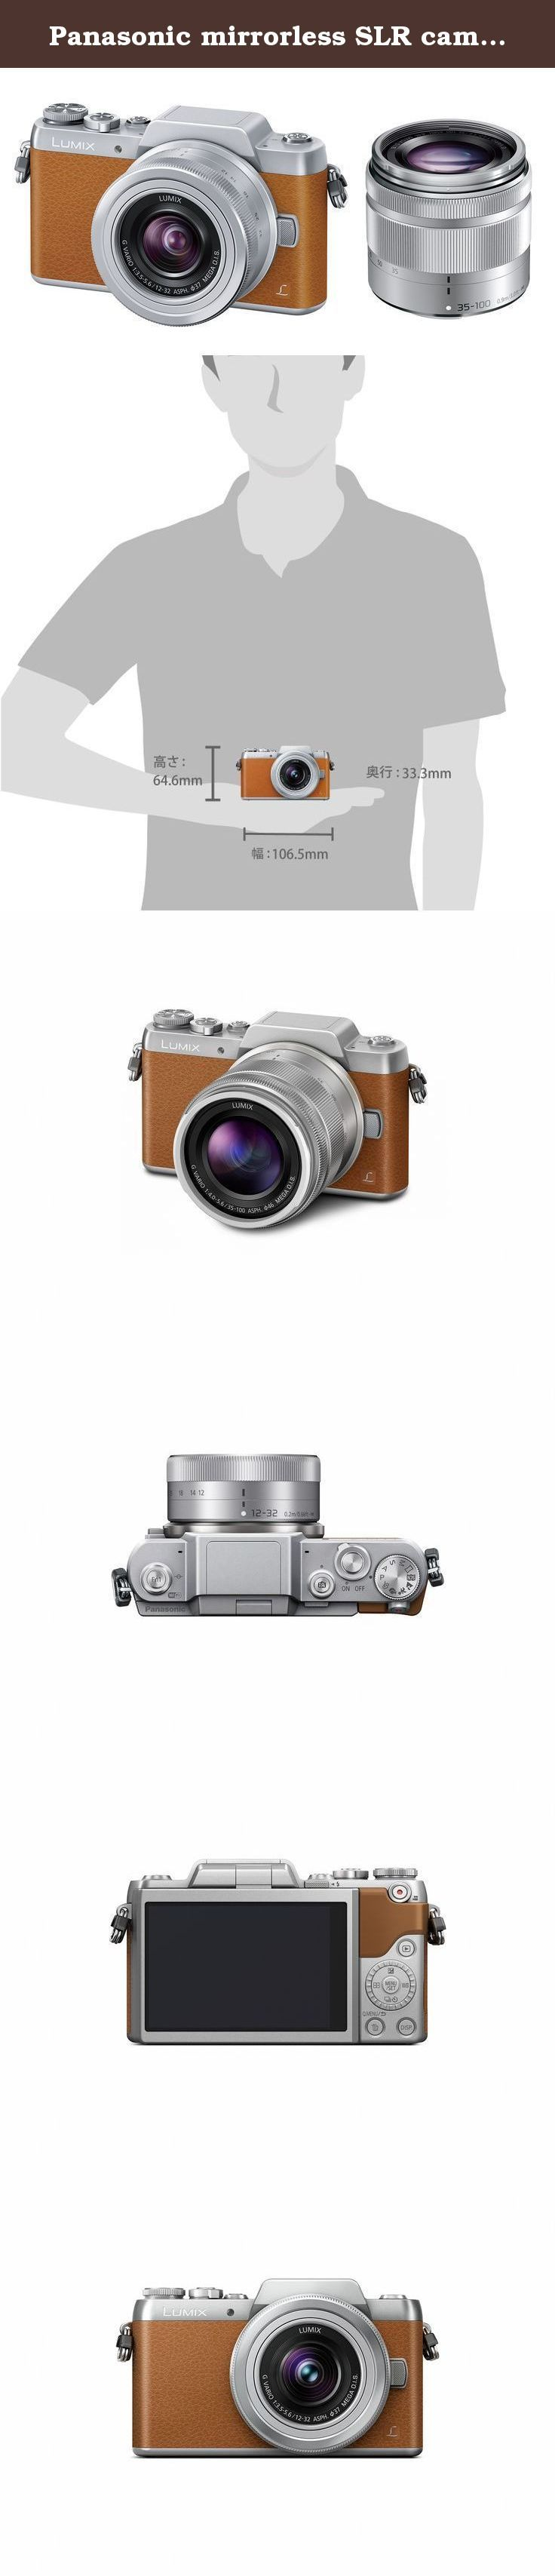 """Panasonic mirrorless SLR camera DMC-GF7 double zoom lens kit standard zoom lens / telephoto zoom lens accessories Brown DMC-GF7W-T - International Version (No Warranty). It is equipped with a """"self-portrait shutter"""" that he can take without pressing the shutter button in GF7. Even alone, even with my friends, you can shoot in a free pose. Such as in a hidden hand once the detected face using the face recognition function, is shutter operation starts automatically when again reveal the…"""